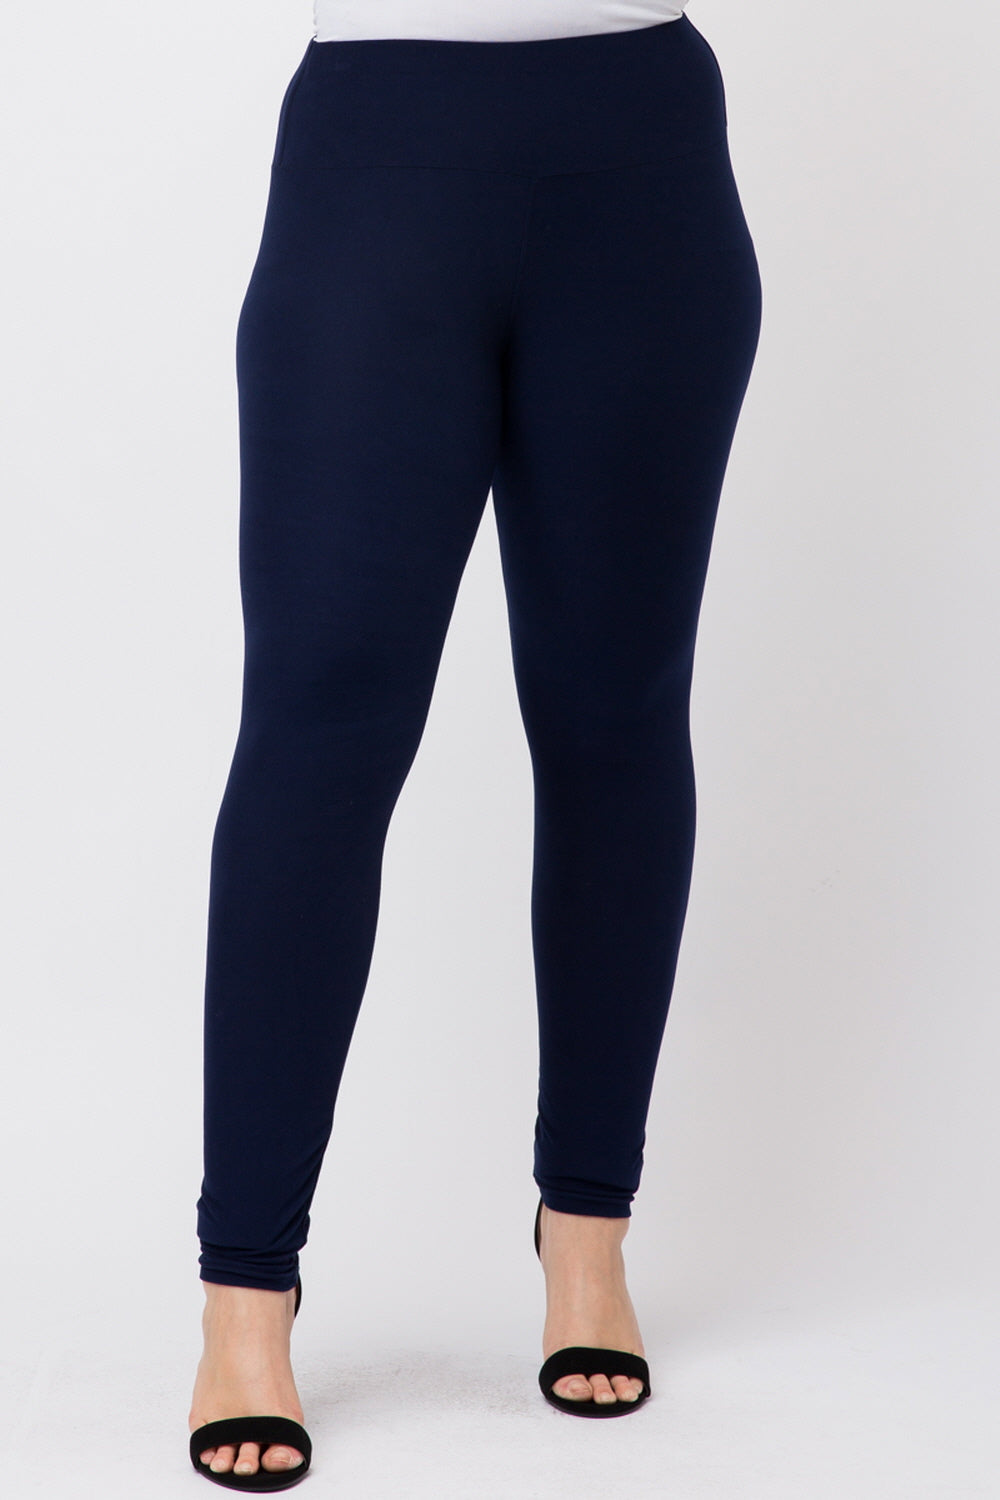 Plus Size High Waist Solid Color Brushed Legging Pants